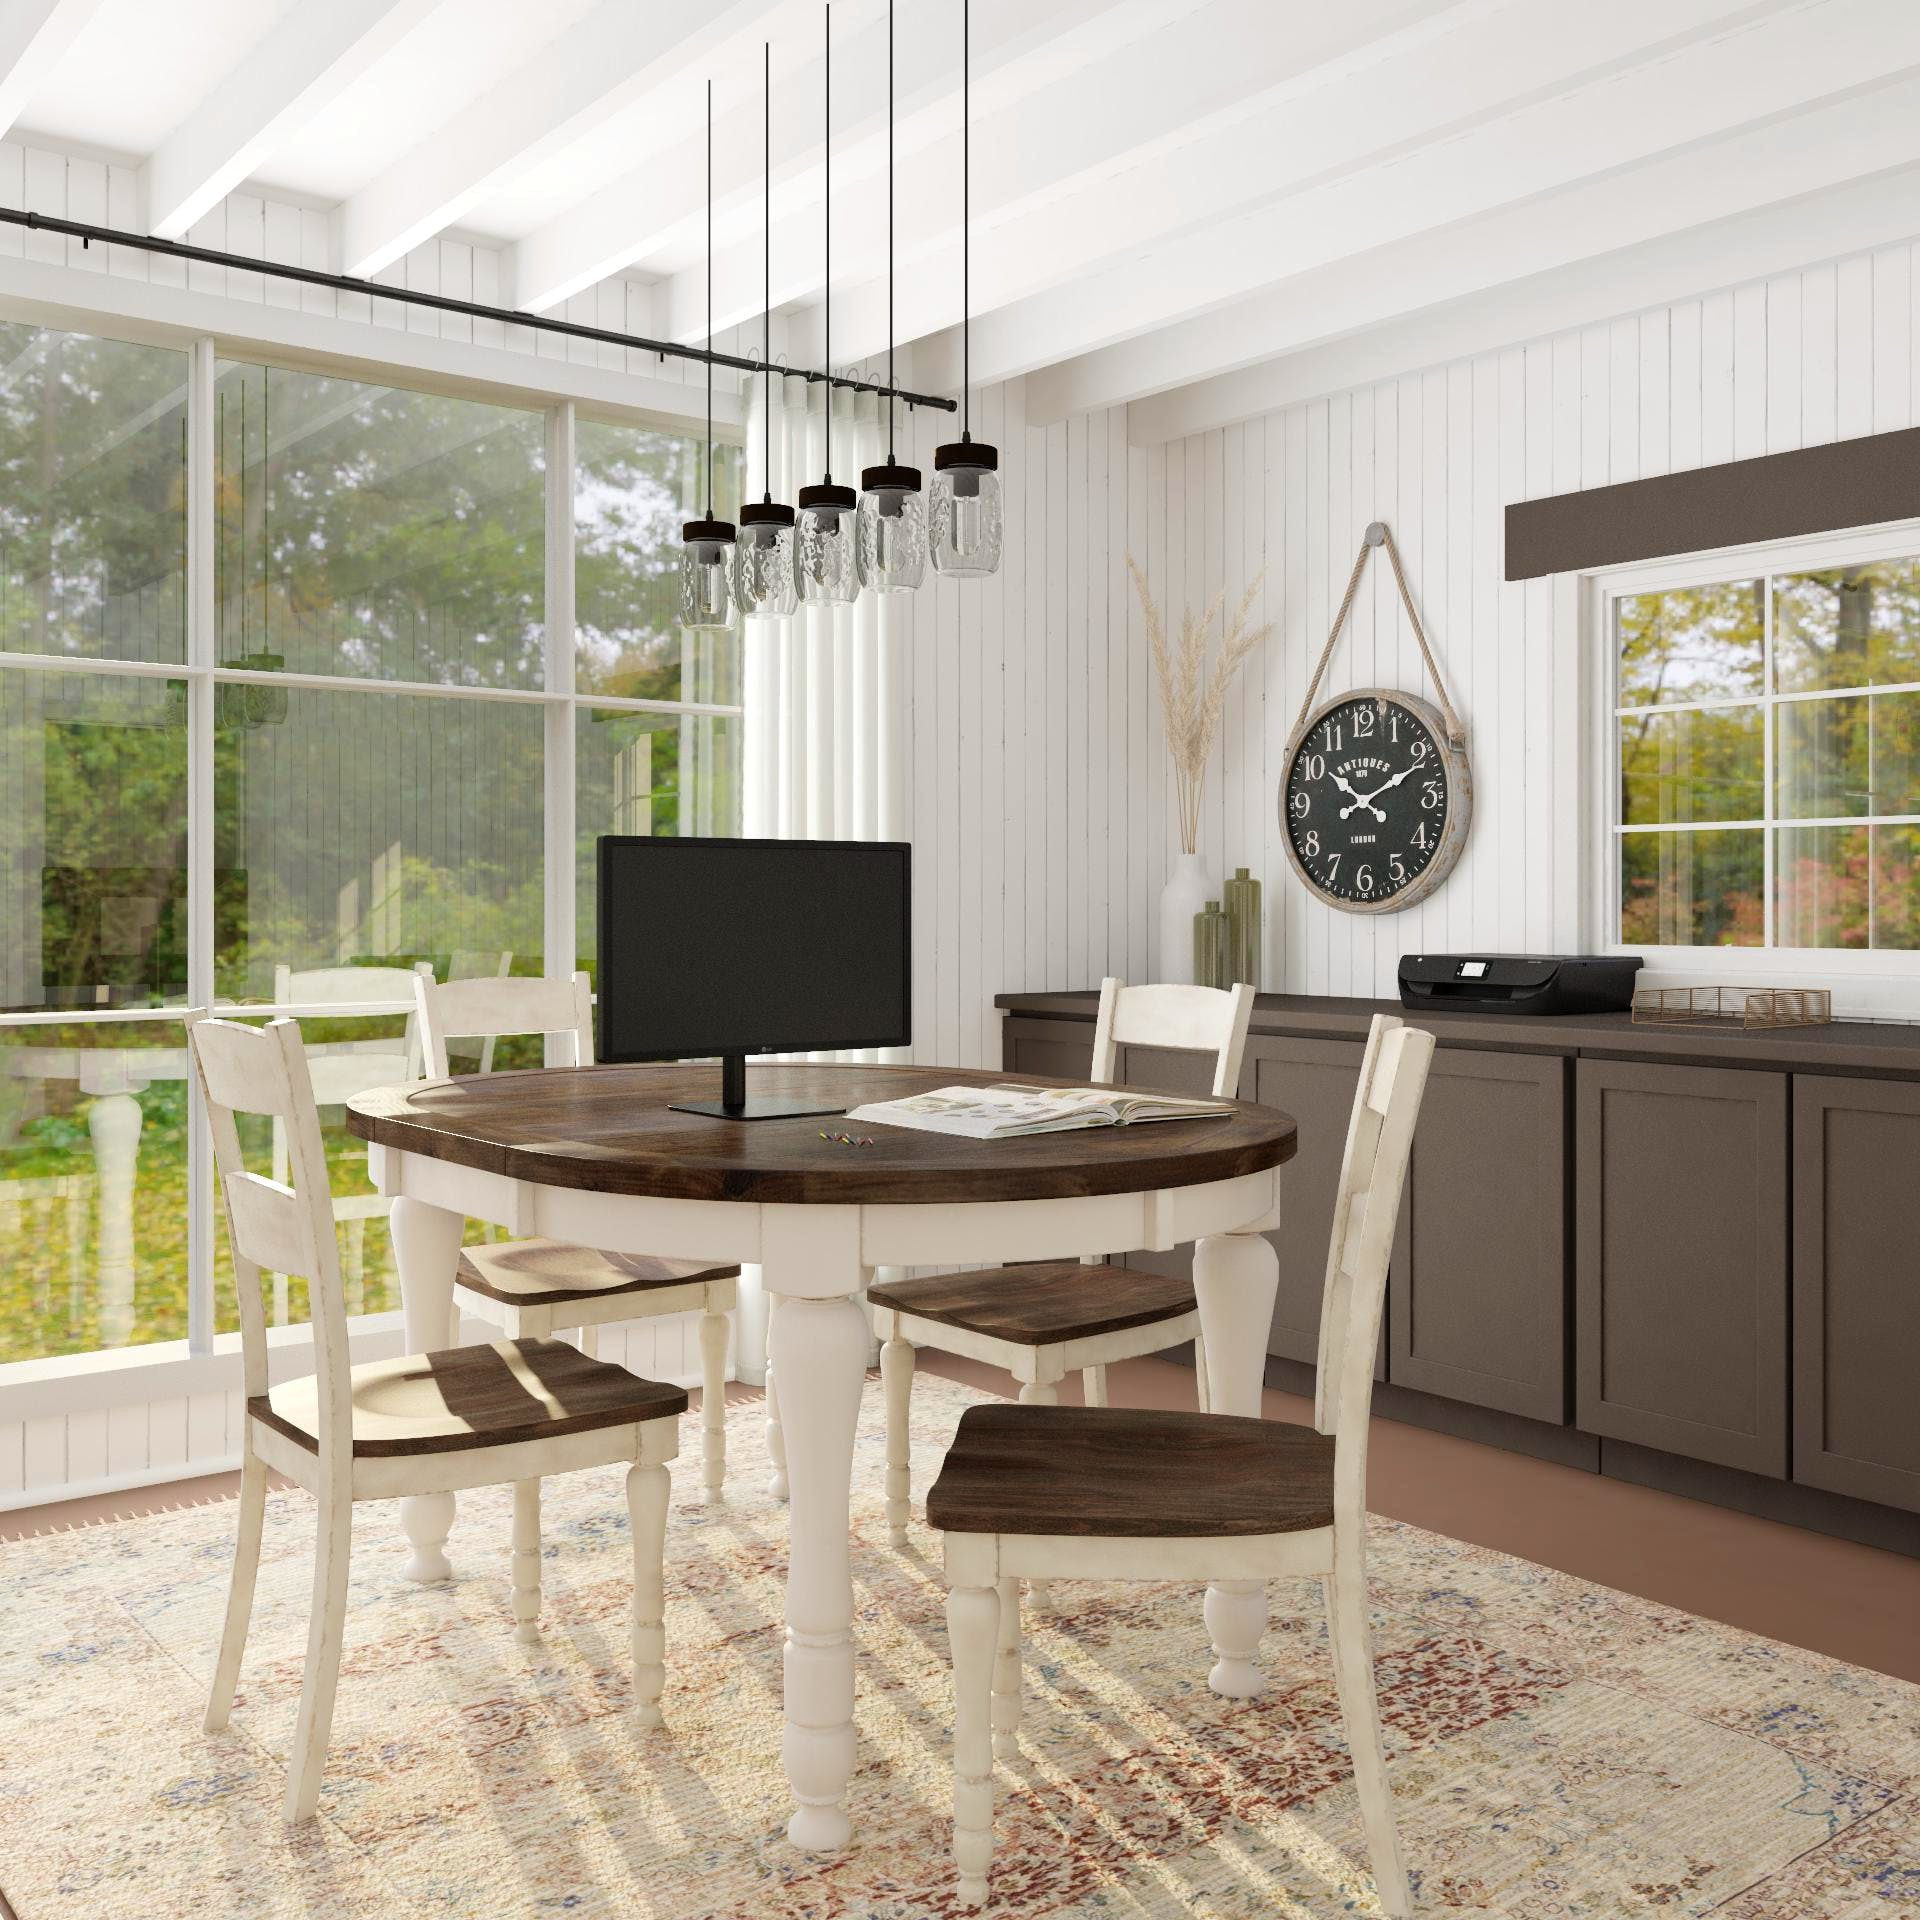 Home Office with Dining Table for Family Work Time